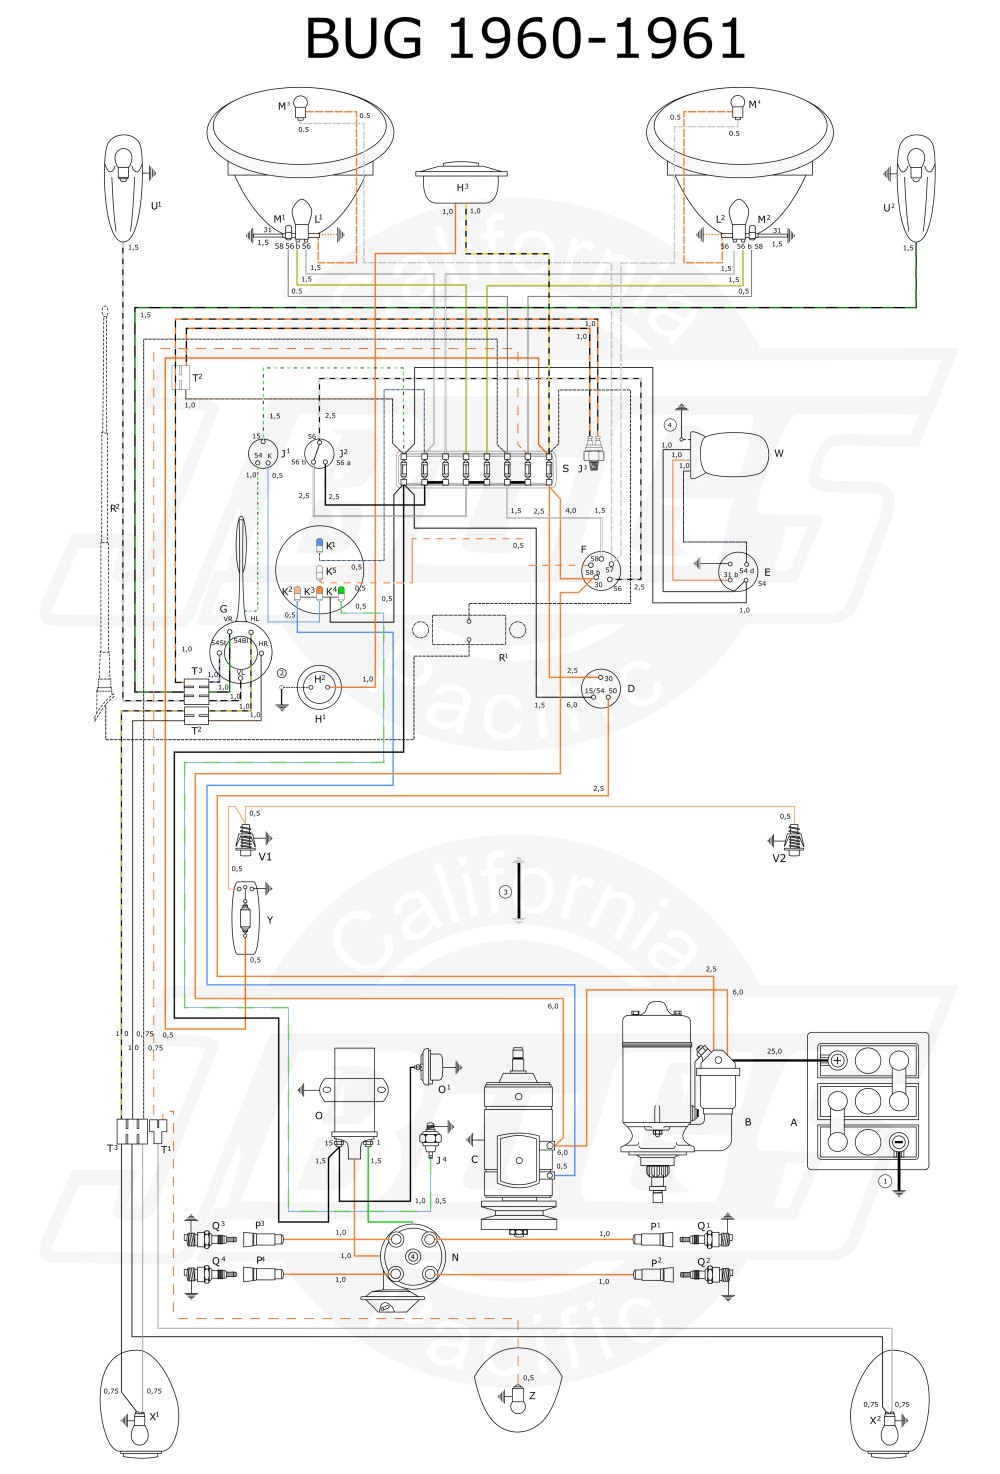 medium resolution of wrg 7916 jlg 20am wiring diagram1960 vw bug wiring experts of wiring diagram u2022 rh